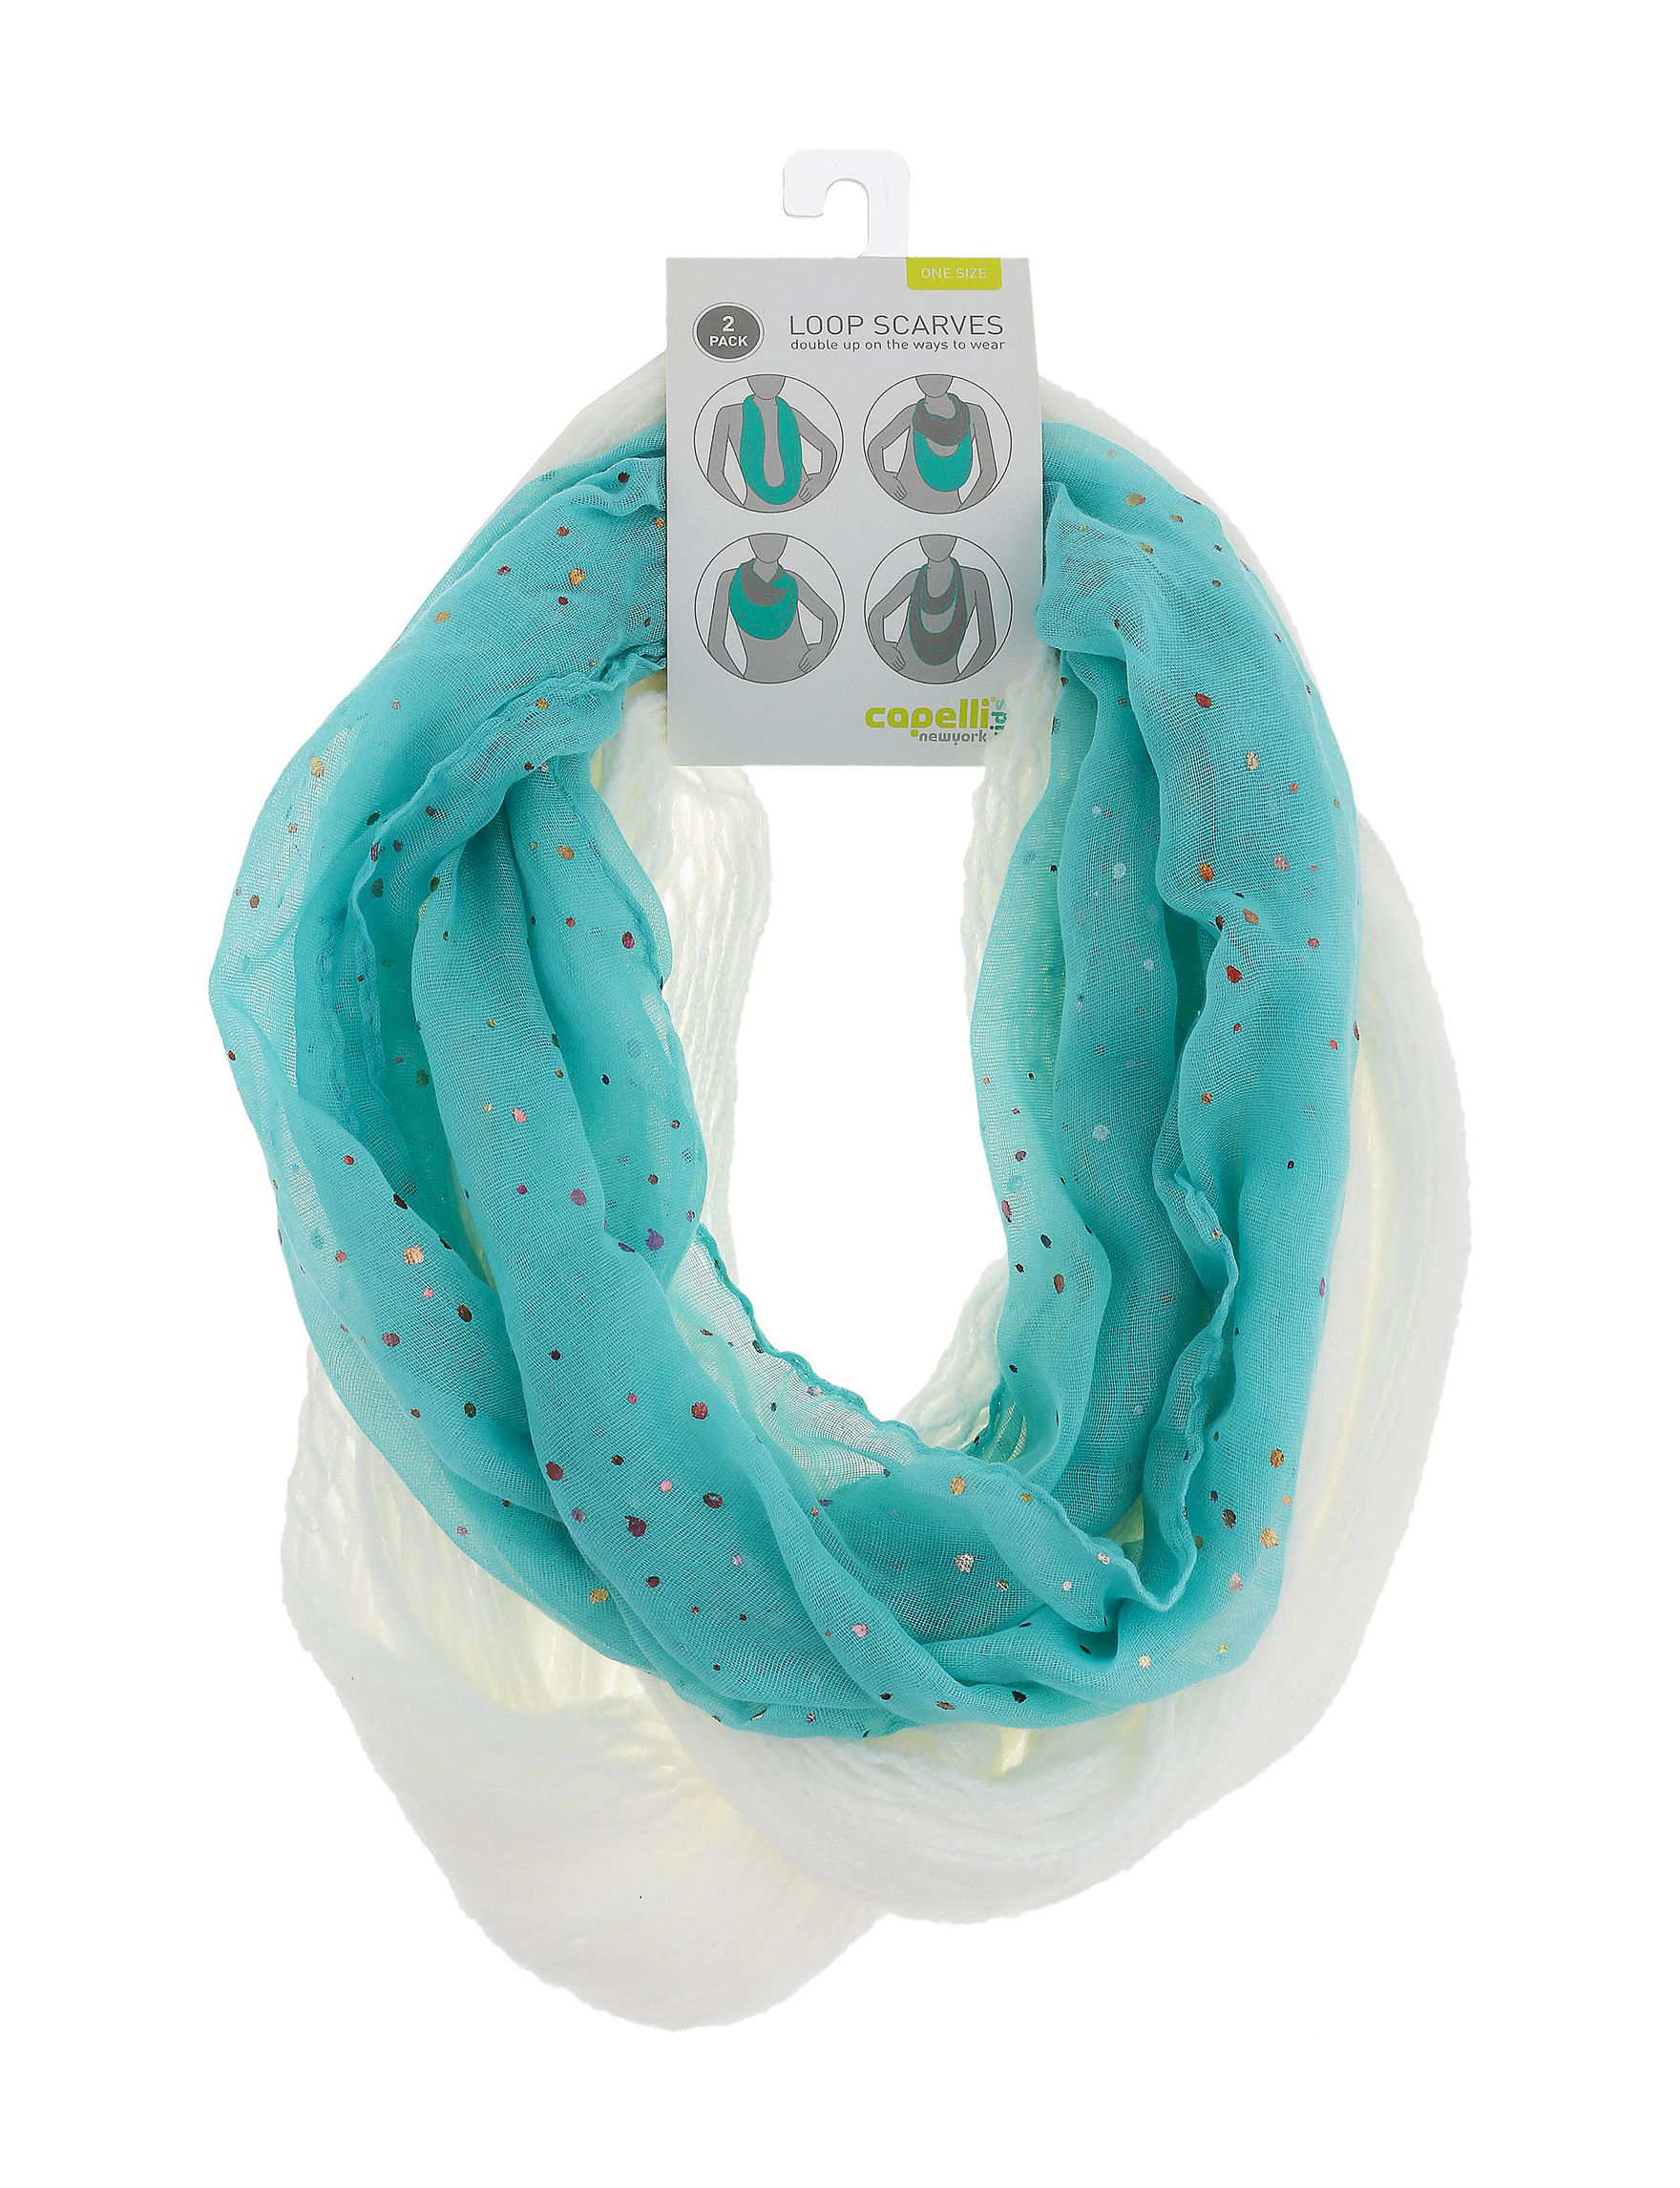 Capelli Turquoise / White Hats, Gloves & Scarves